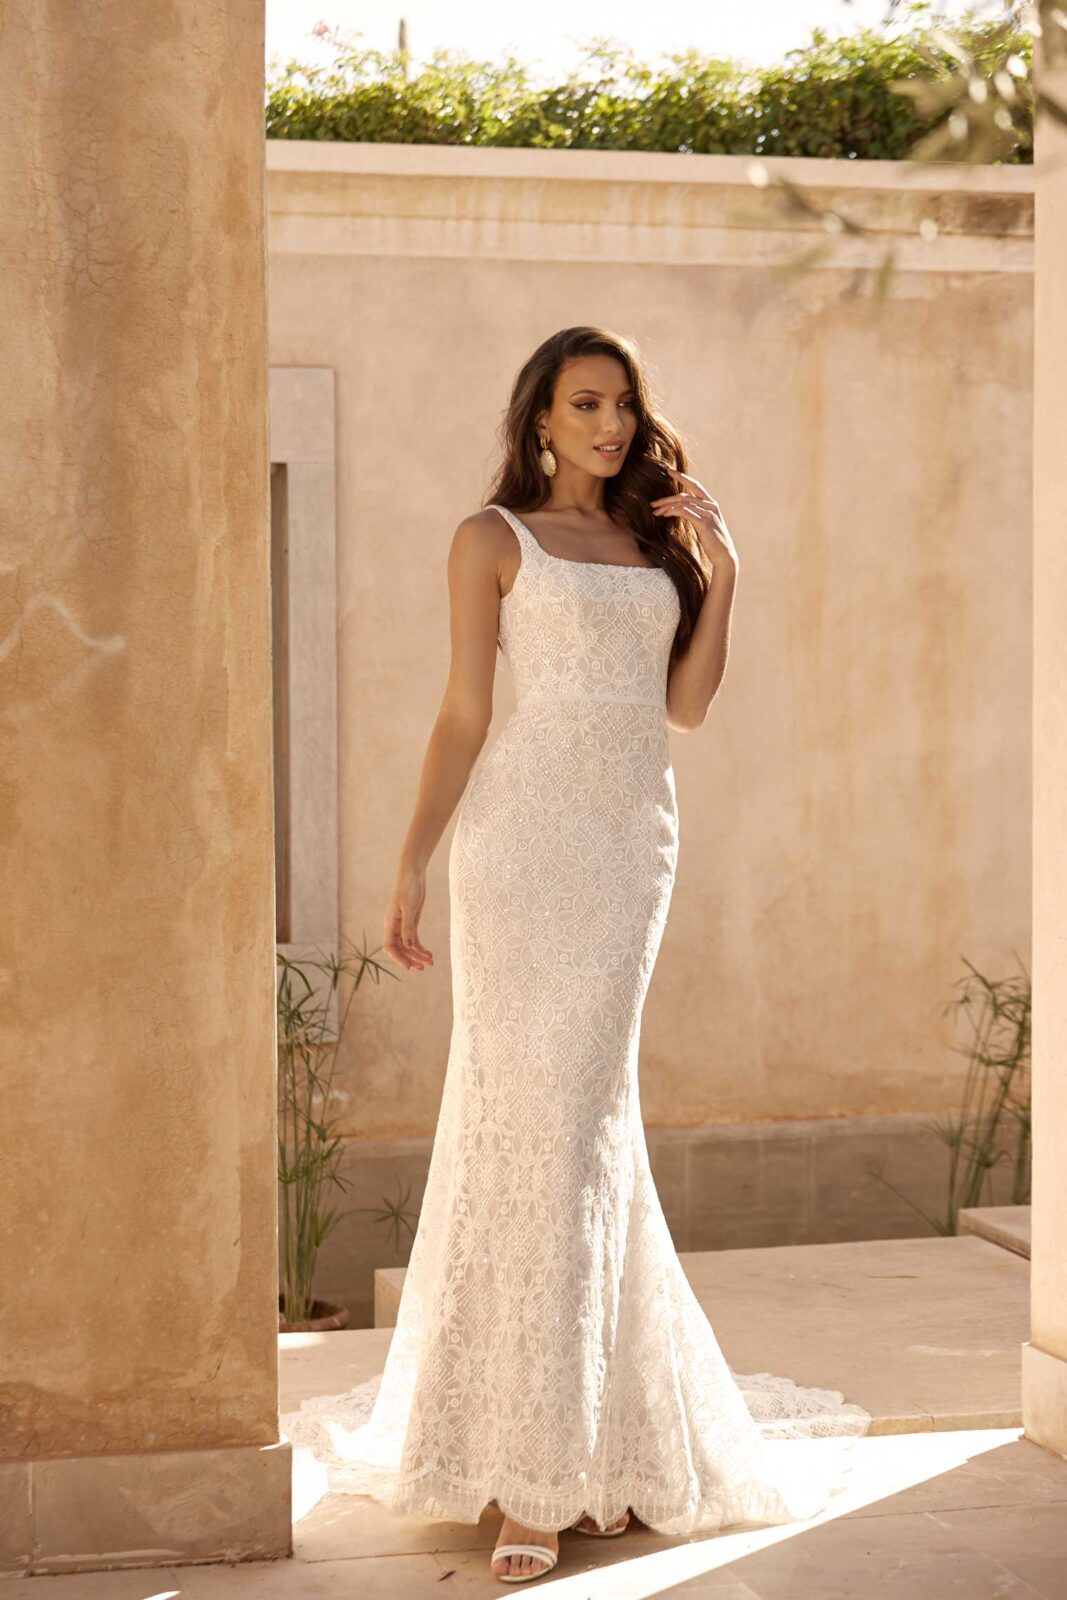 ADELAIDE-ML15010-FULL-LENGTH-FITTED-GOWN-WITH-LOW-BACK-AND-DETACHABLE-OVERSKIRT-SLEEVES-AND-BELT-WEDDING-DRESS-MADI-LANE-BRIDAL4